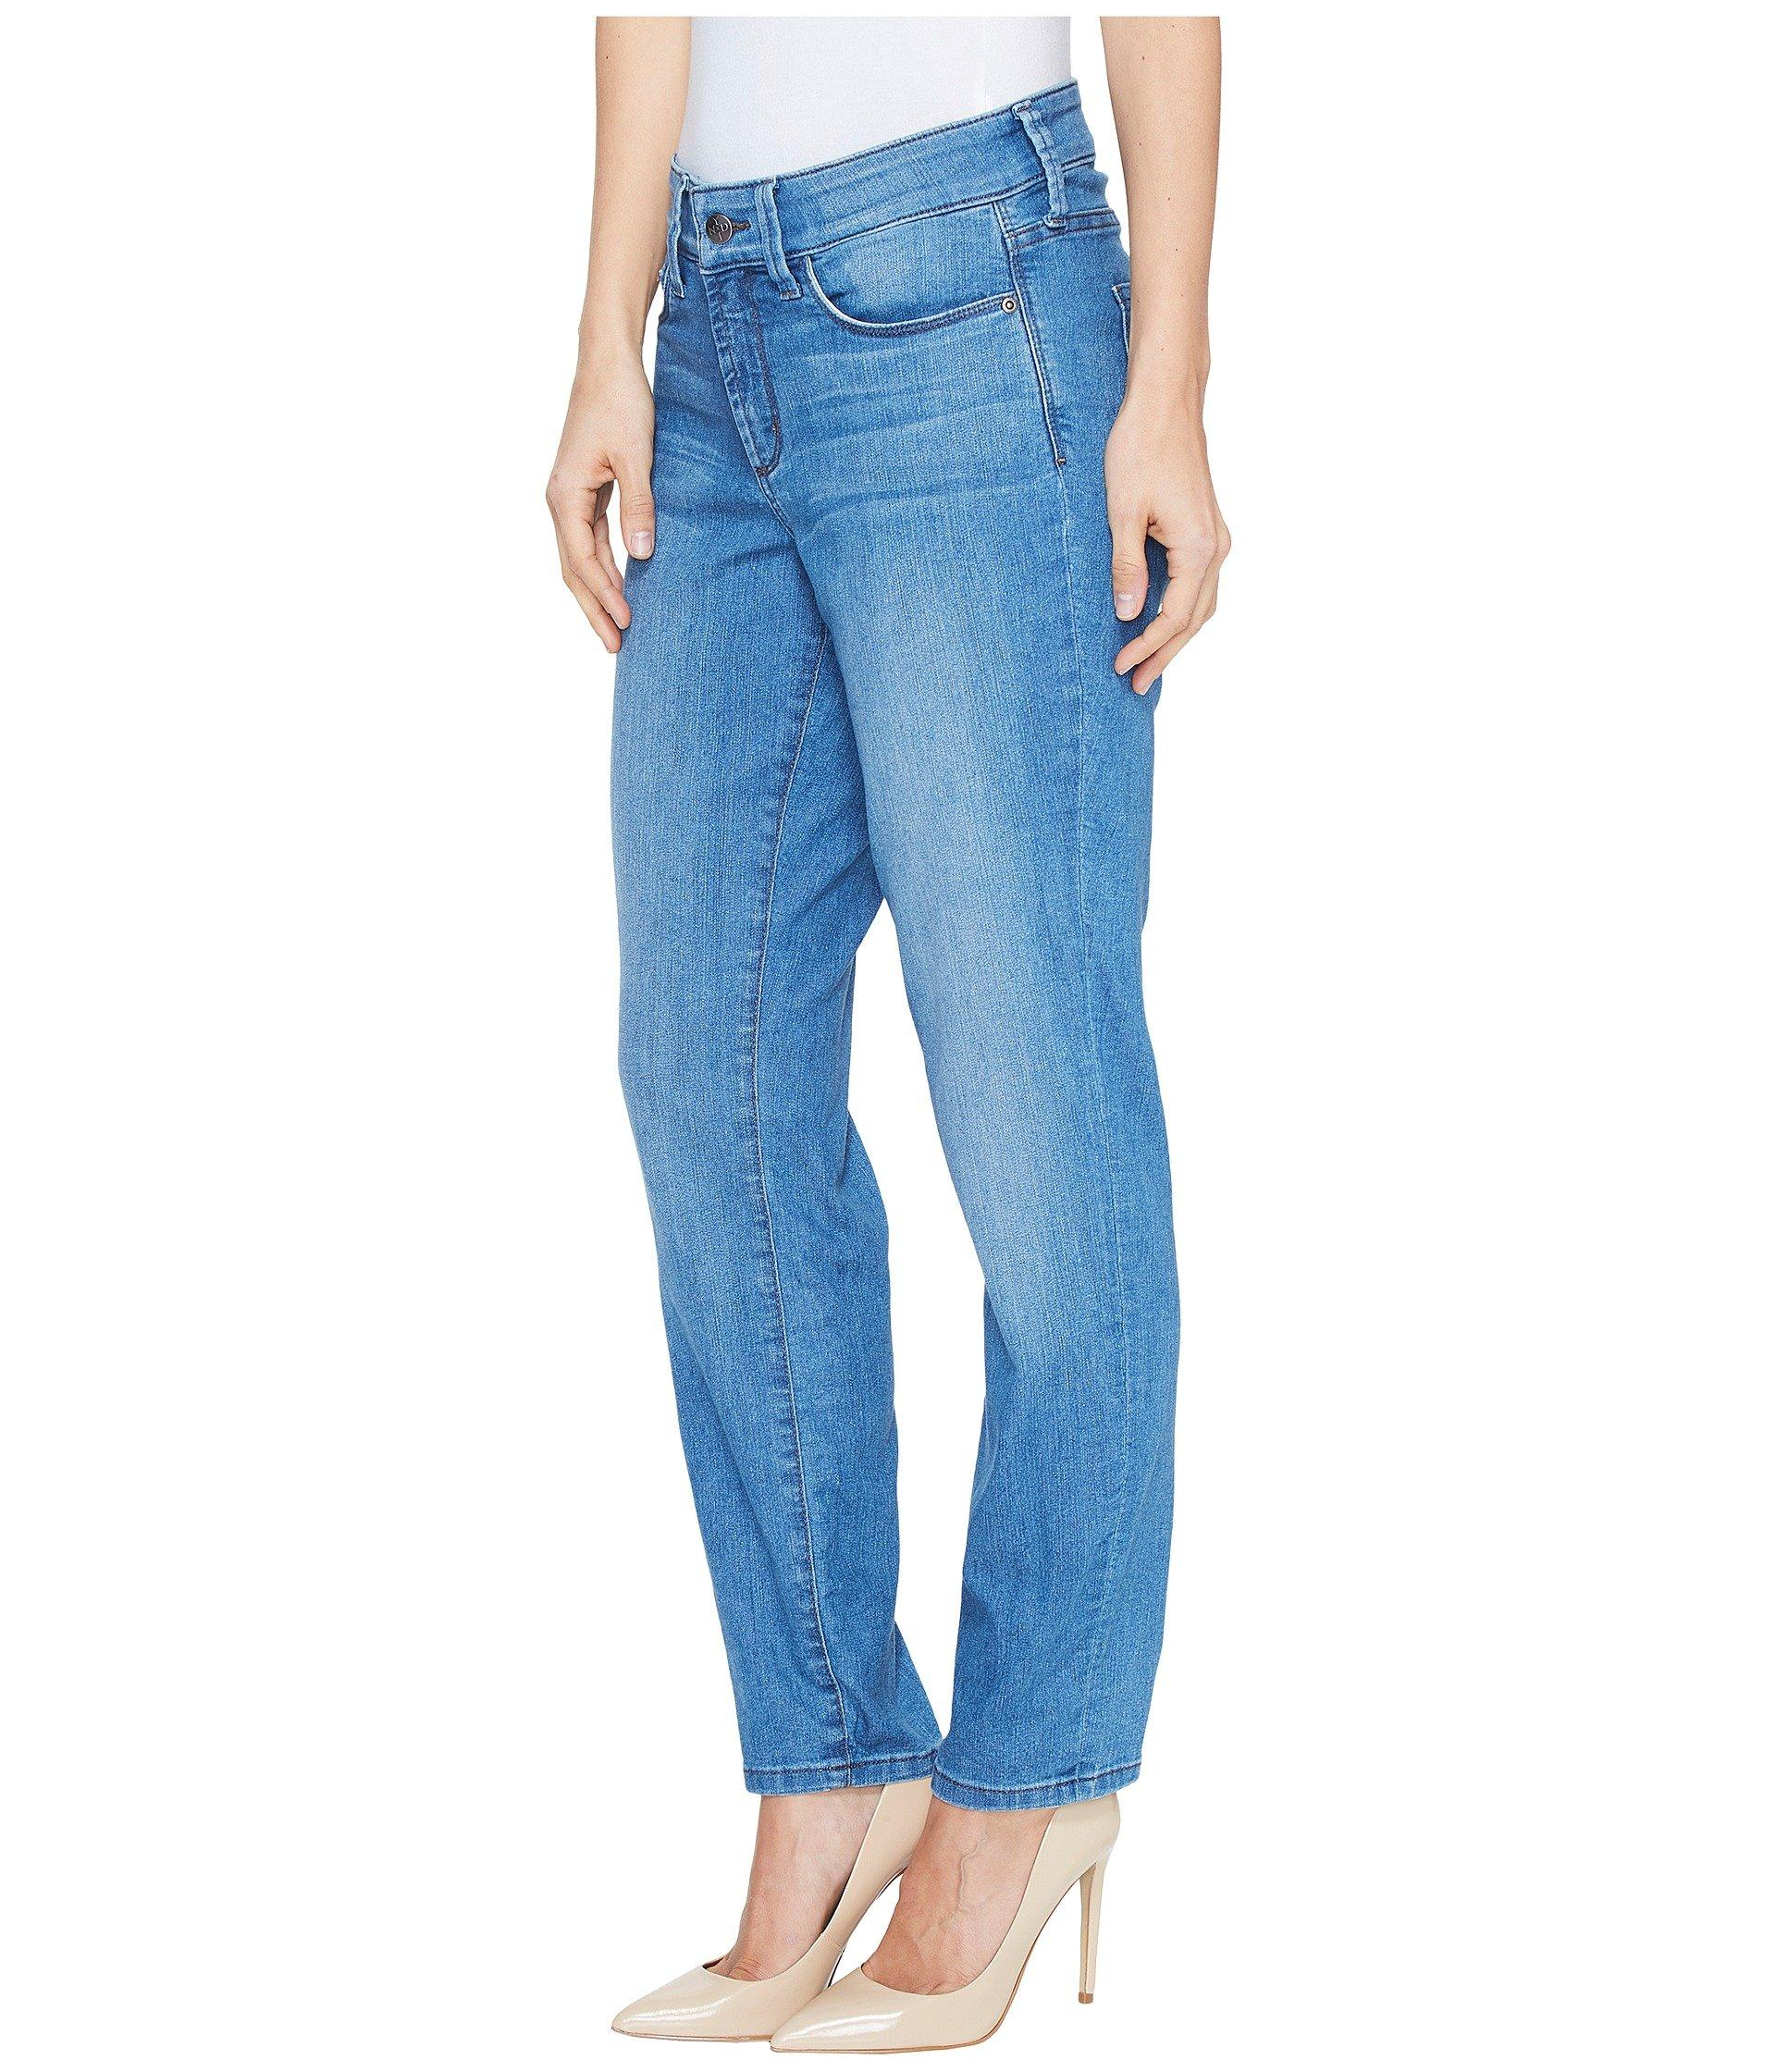 eaa22ef2b9d1 Lyst - NYDJ Alina Convertible Ankle In Jet Stream (jet Stream) Women's Jeans  in Blue - Save 8%